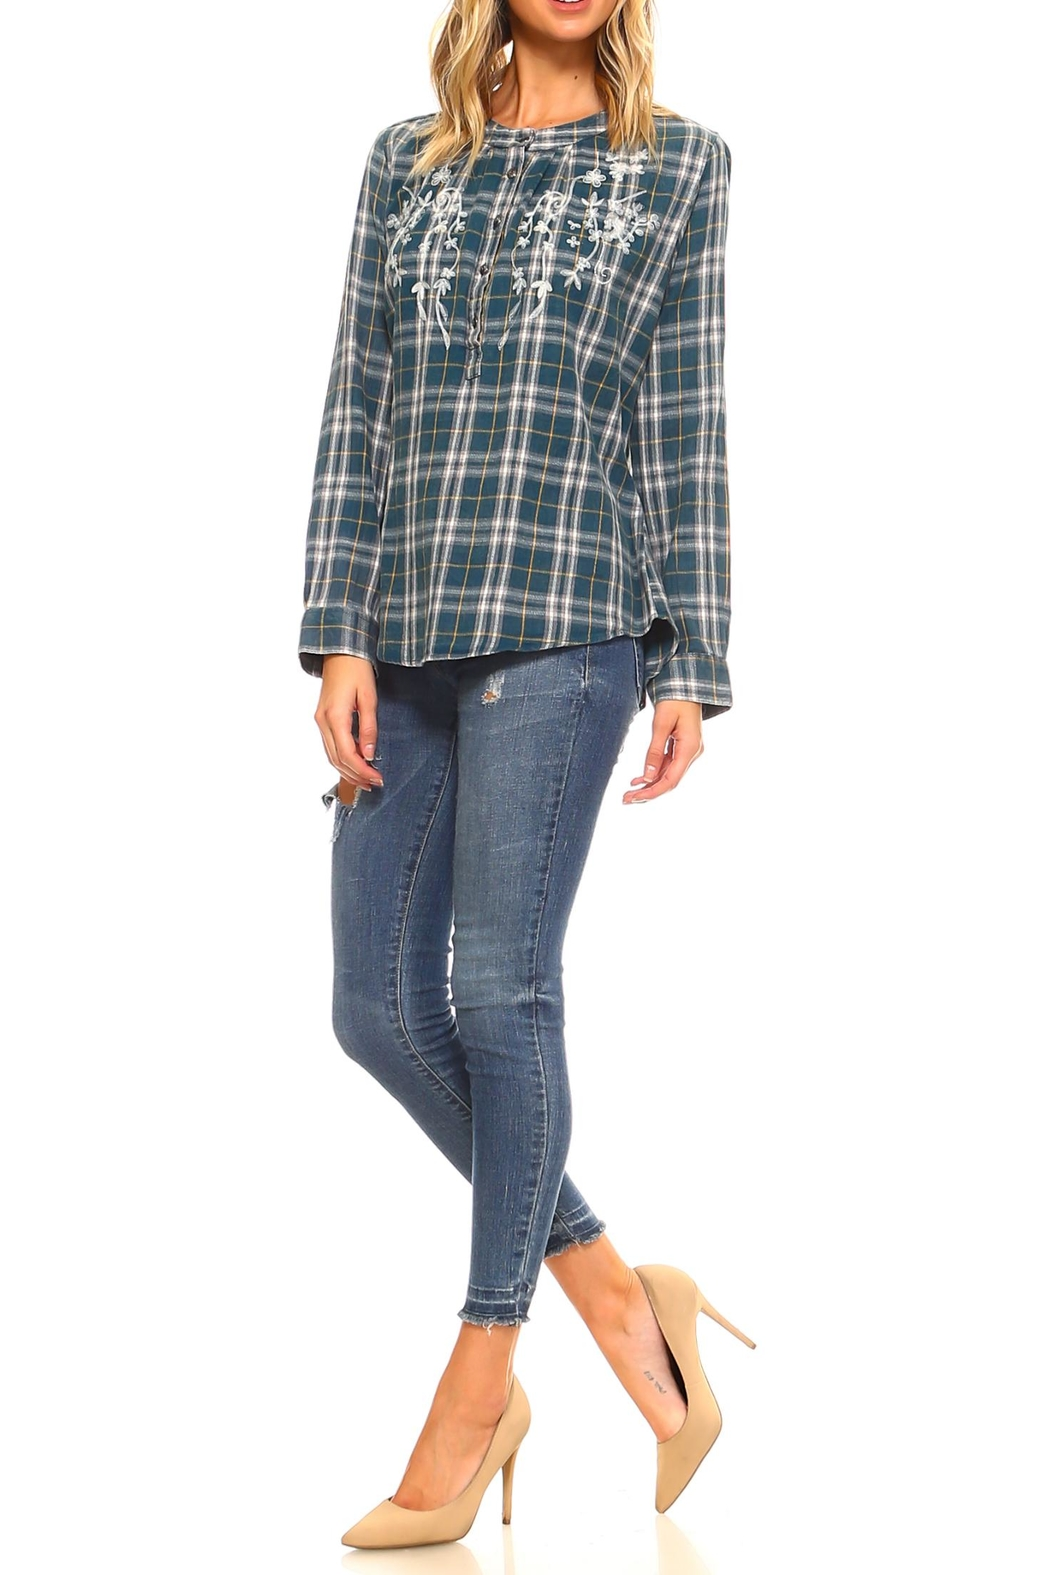 Lola P. Embroidered Plaid Shirt - Side Cropped Image